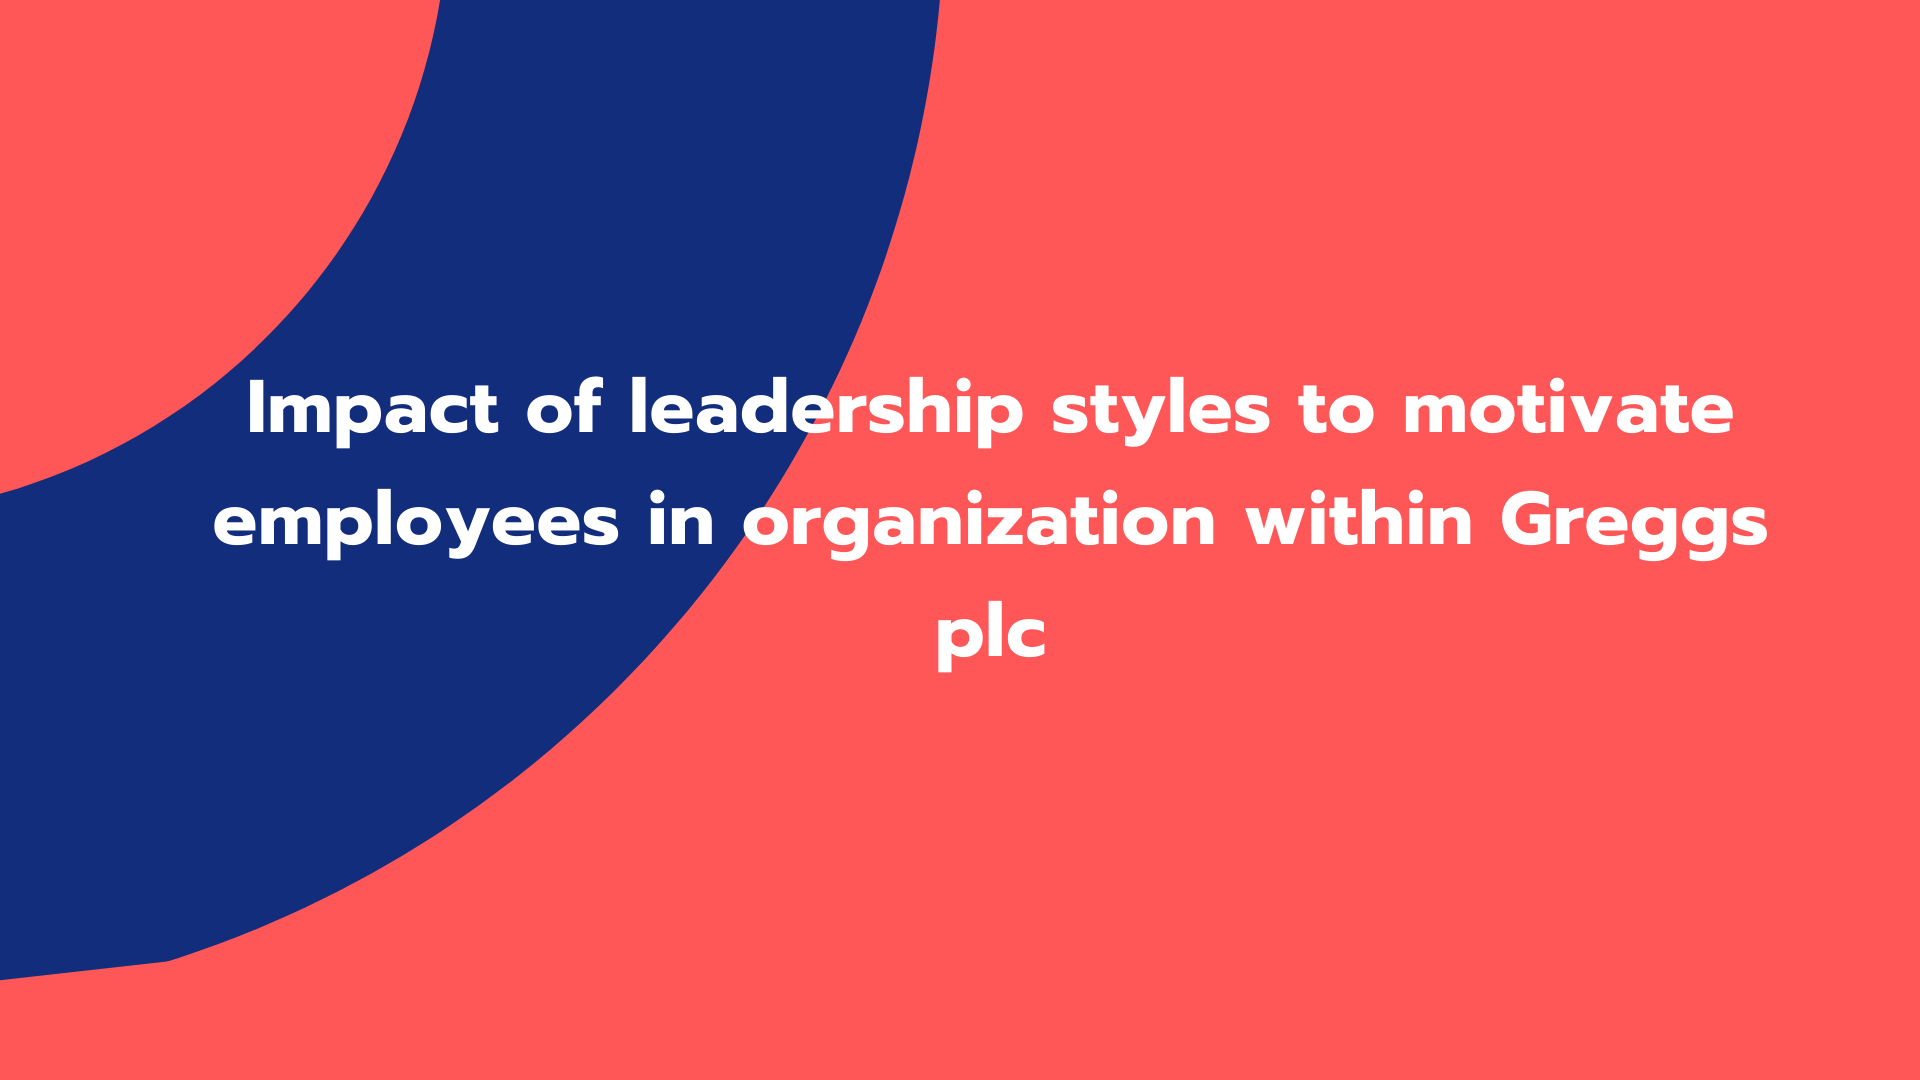 Impact of leadership styles to motivate employees in organization within Greggs plc